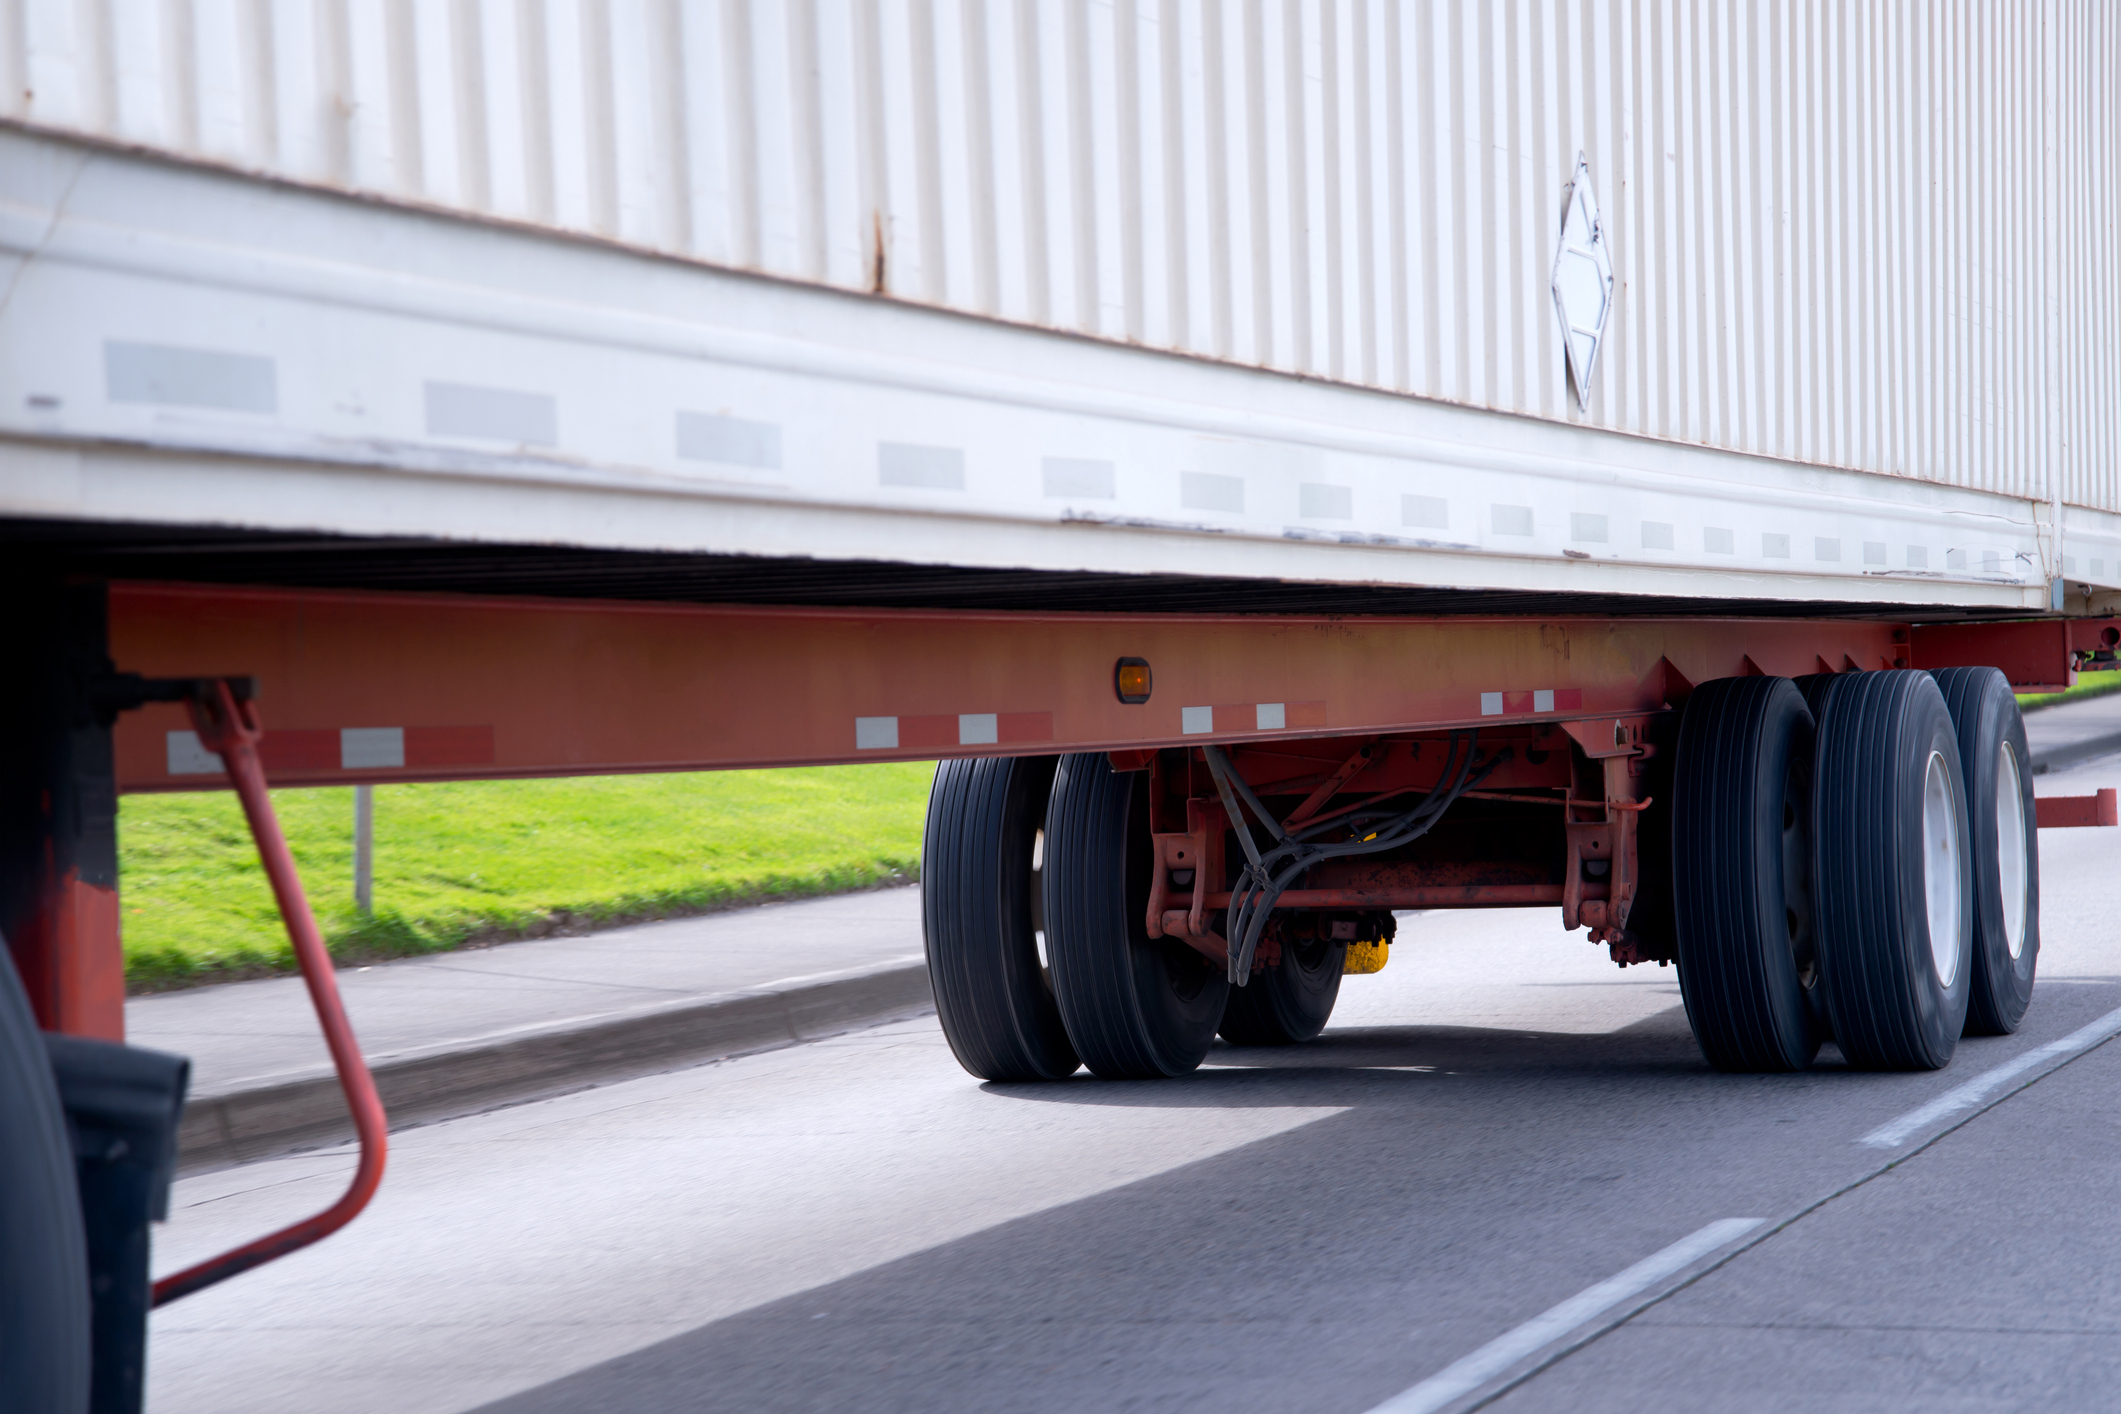 Unprecedented Container Volume Causing National Chassis Shortage